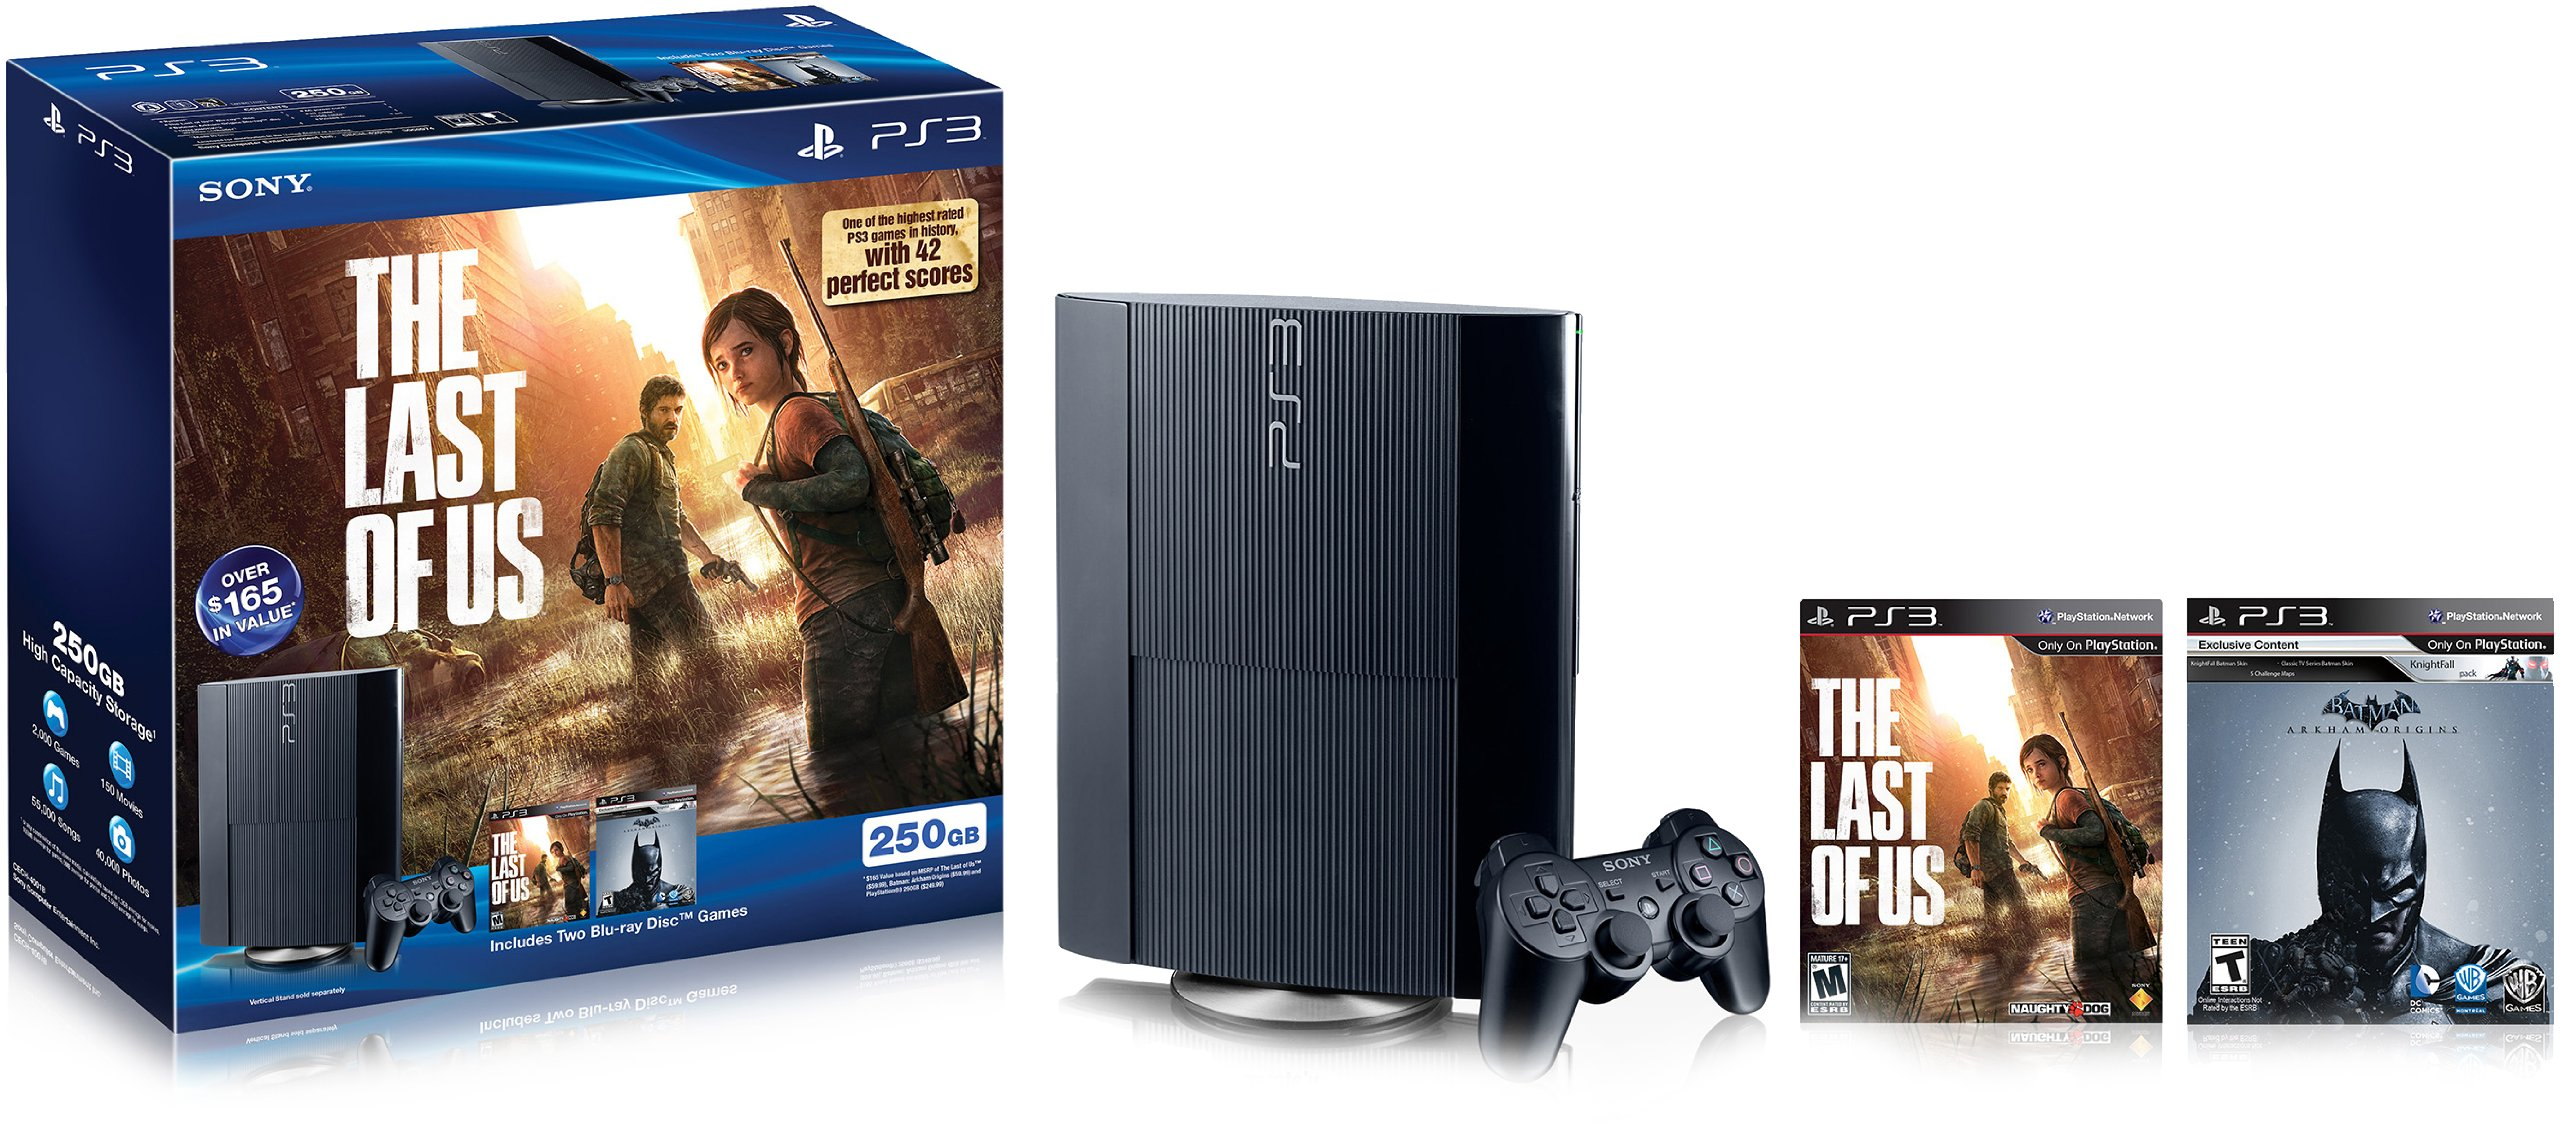 PlayStation 3 The Last of Us & Batman: Arkham Origins Bundle by Sony